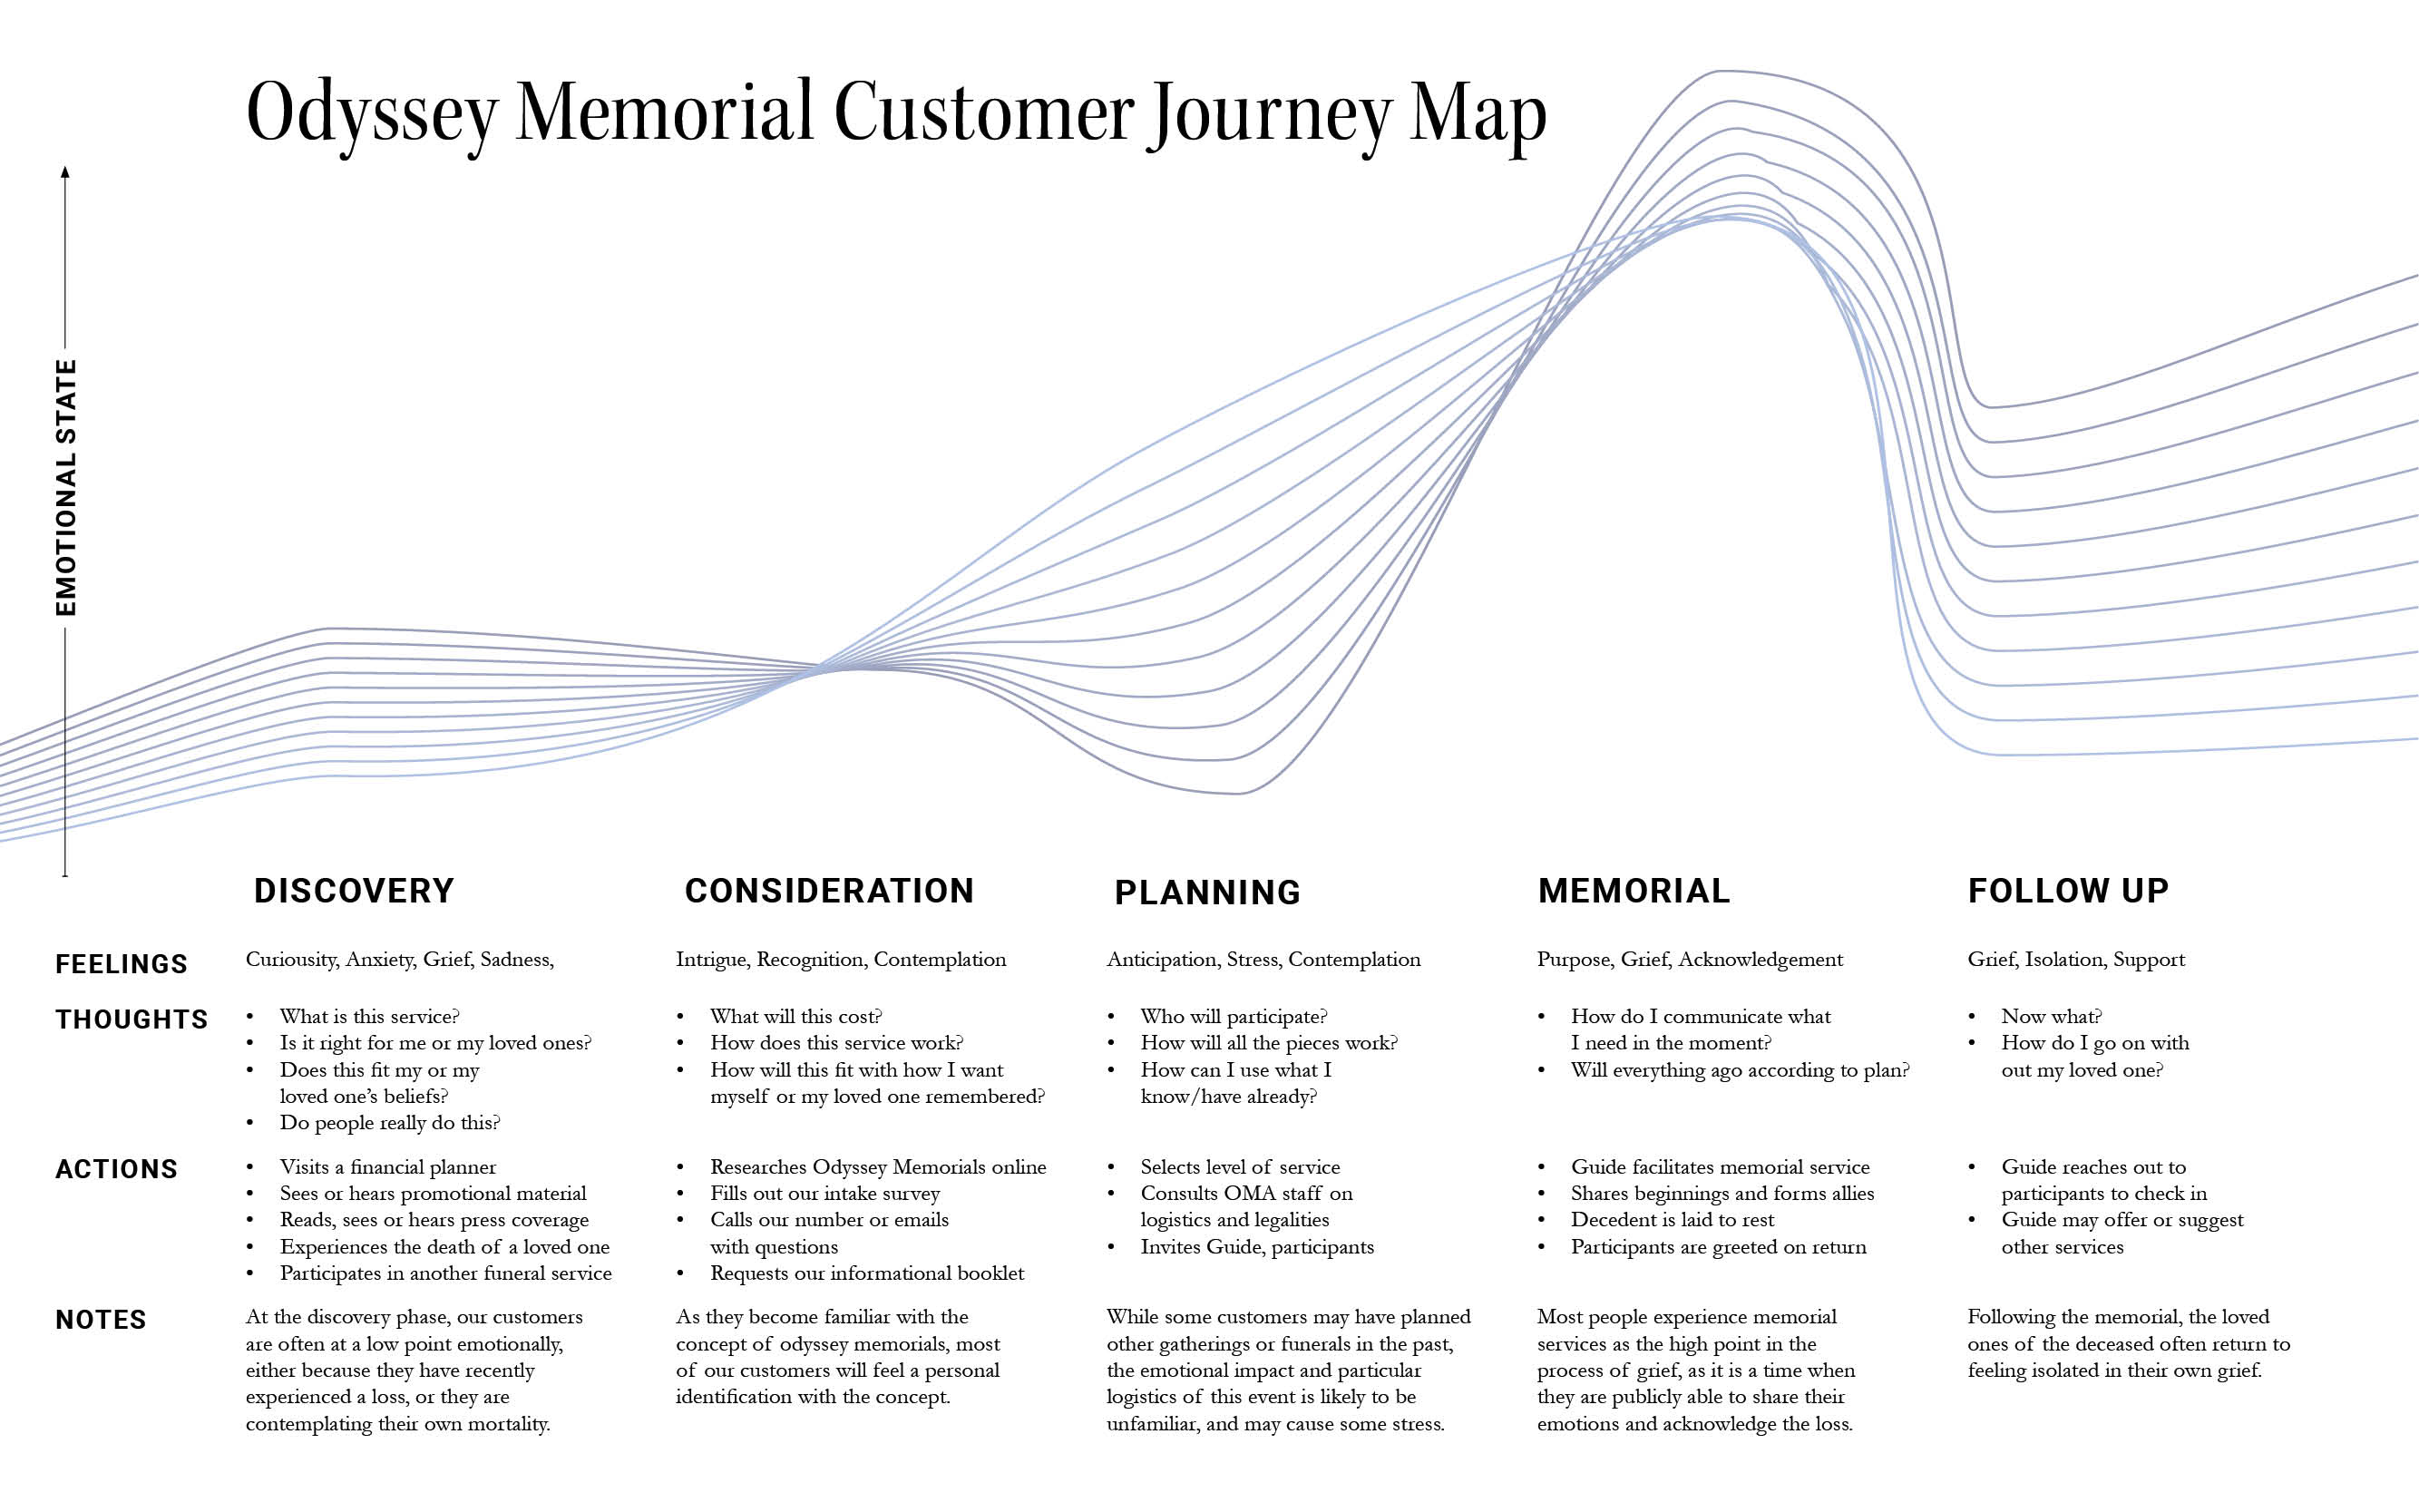 Customer Journey Map covering a variety of potential customers